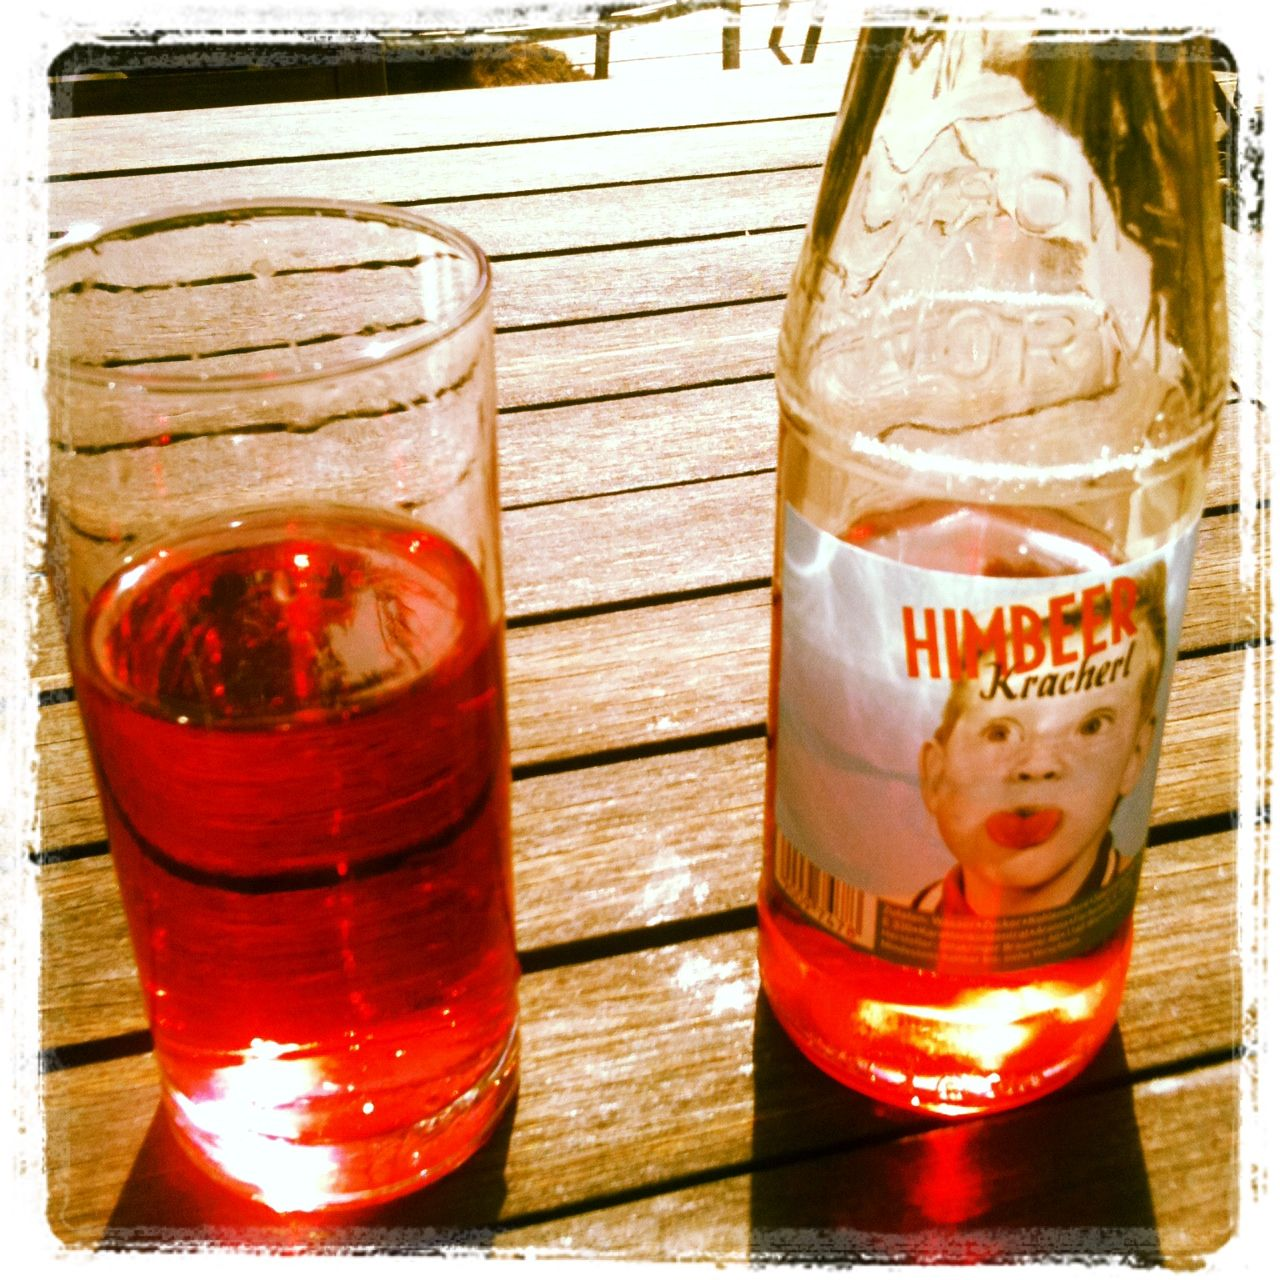 One Traditional Austrian Soft Drink I Really Like Himbeerkracherl Carbonated Raspberry Drink Raspberry Drink Wine Bottle Soft Drinks